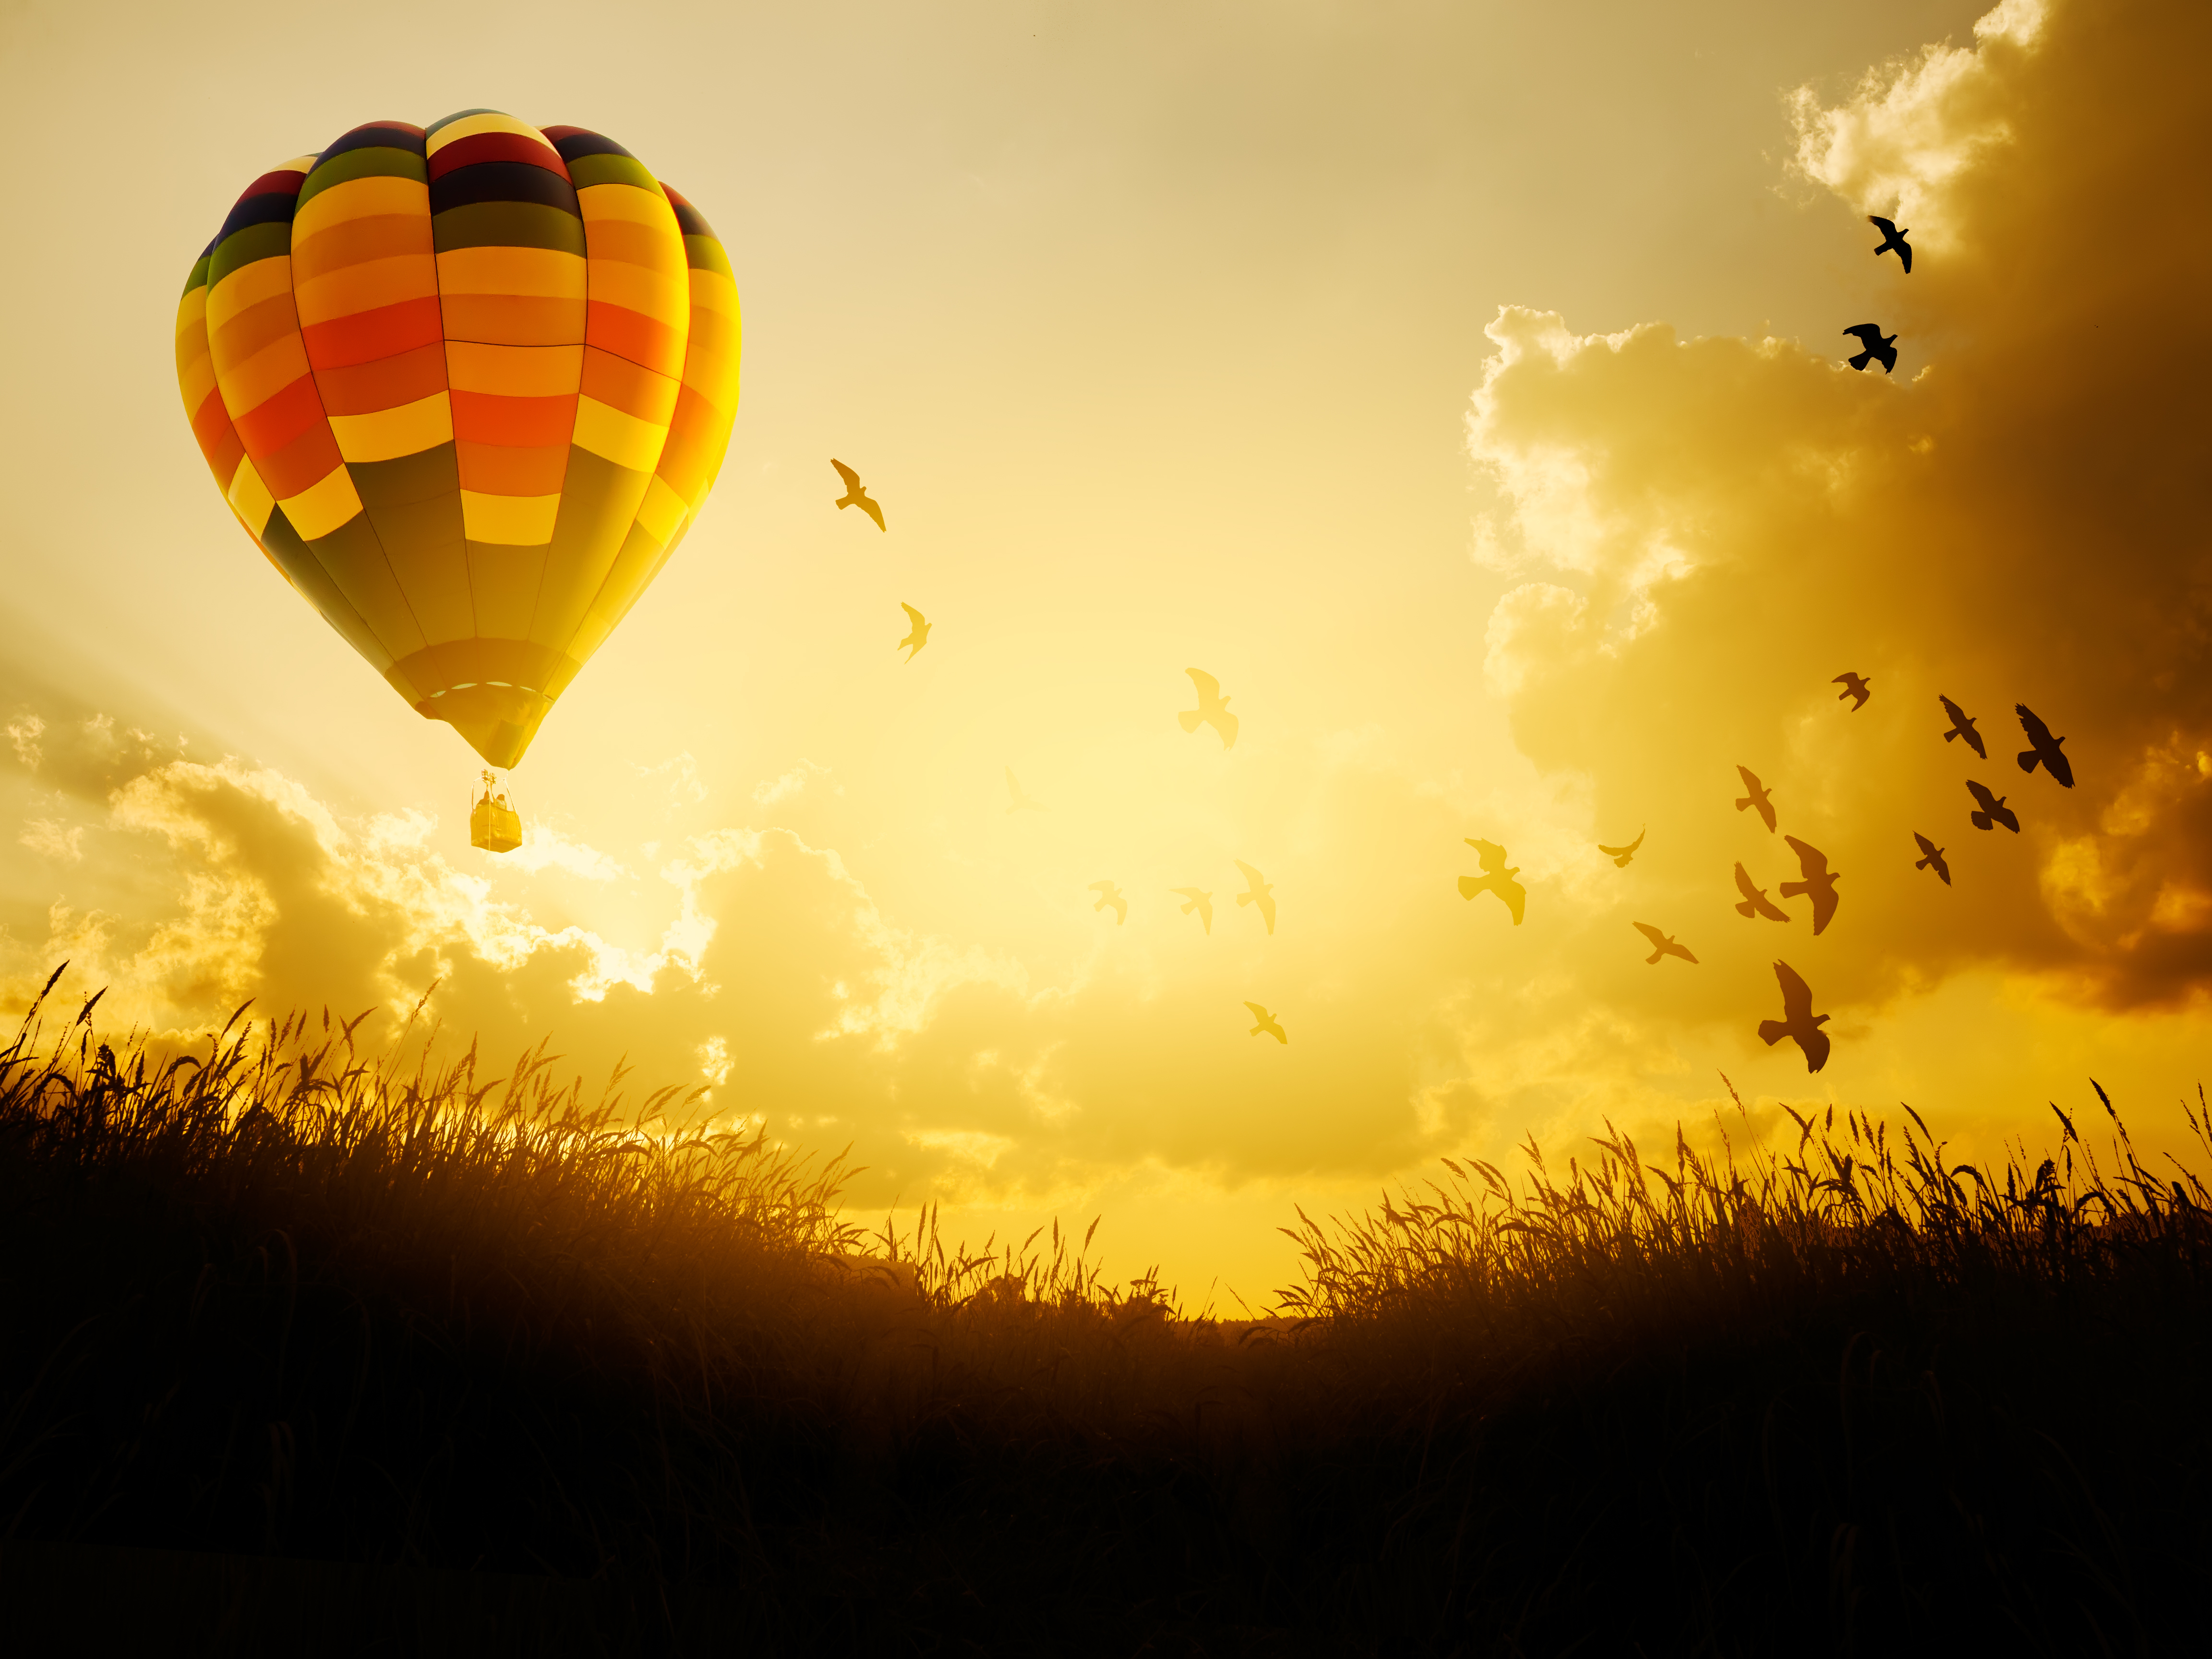 Hot air balloon flying with birds in sun